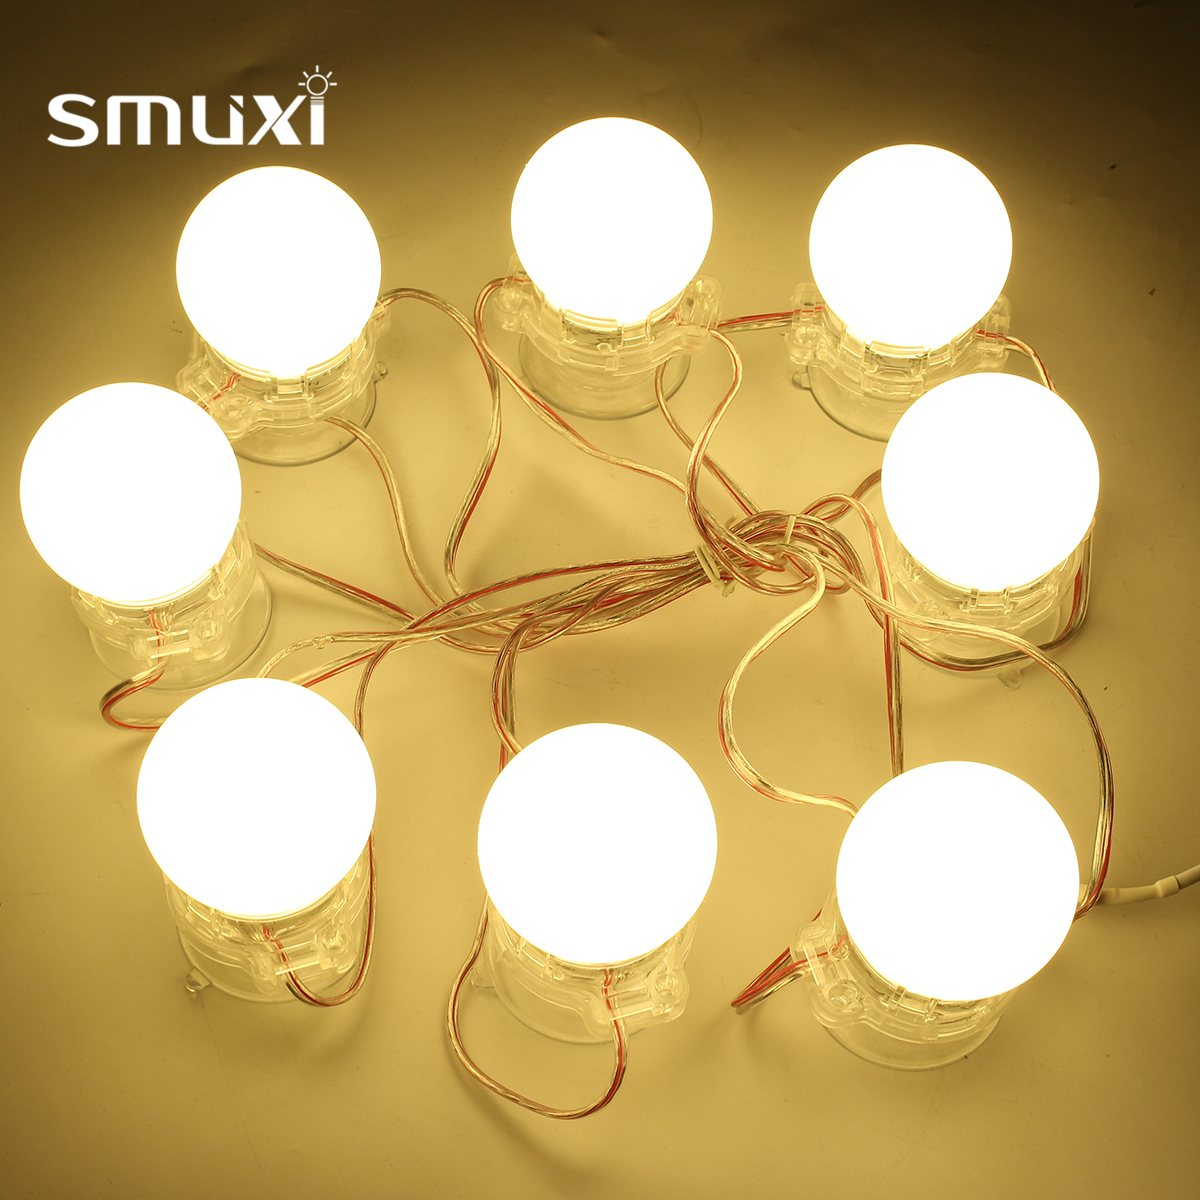 Smuxi Newest 8Pcs DIY Waterproof Makeup Mirror Vanity LED Light Bulbs String Kit for Dressing Home Decoration Warm/Cool White